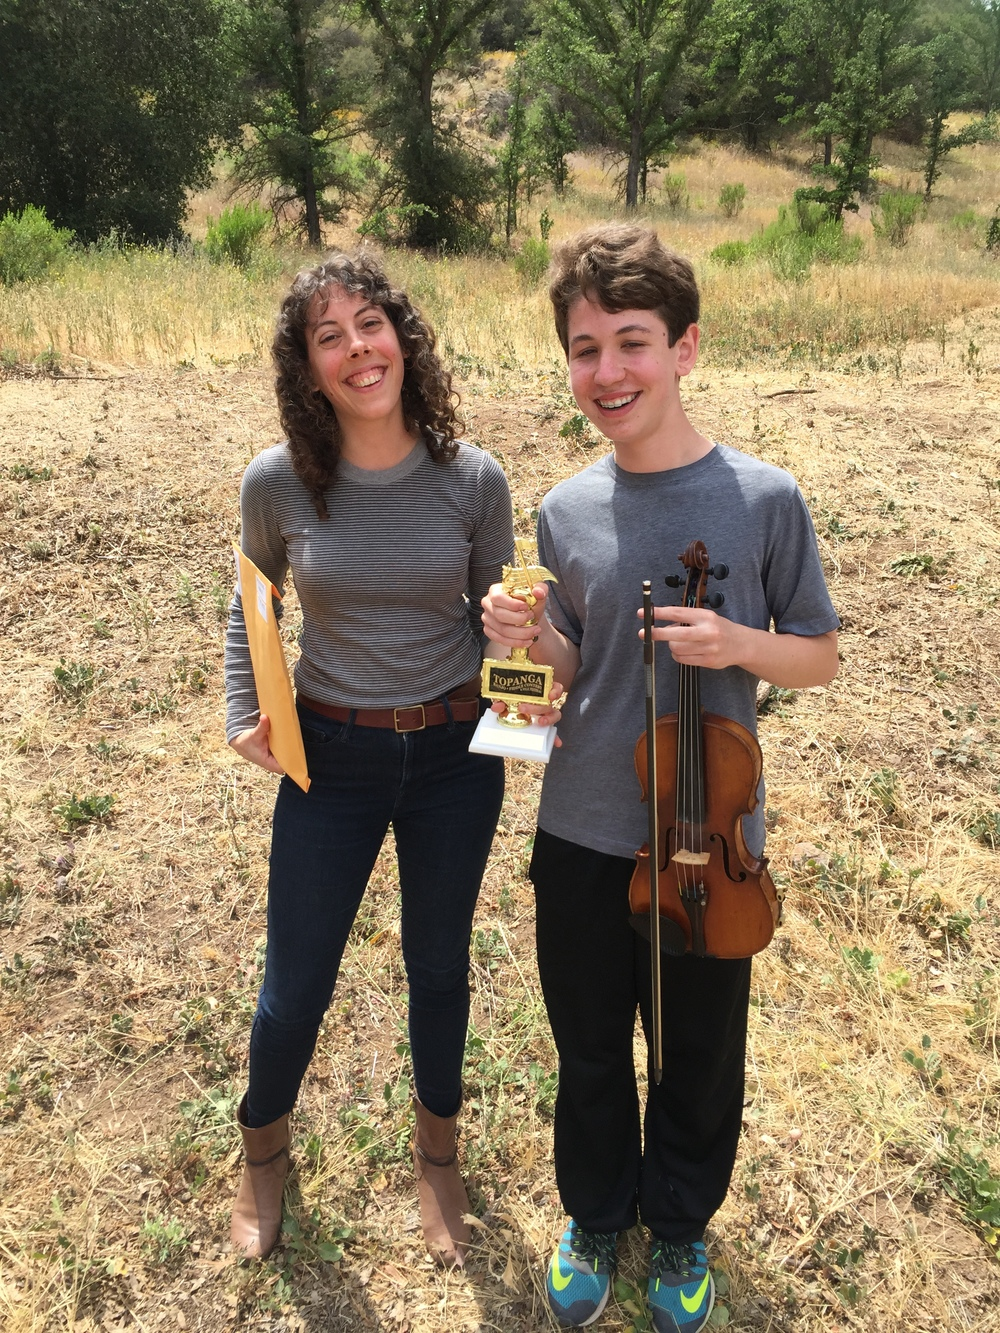 Michael and myself at the 55th Annual Topnaga Banjo Fiddle Contest holding the 1st place trophy for Beginner Fiddle.